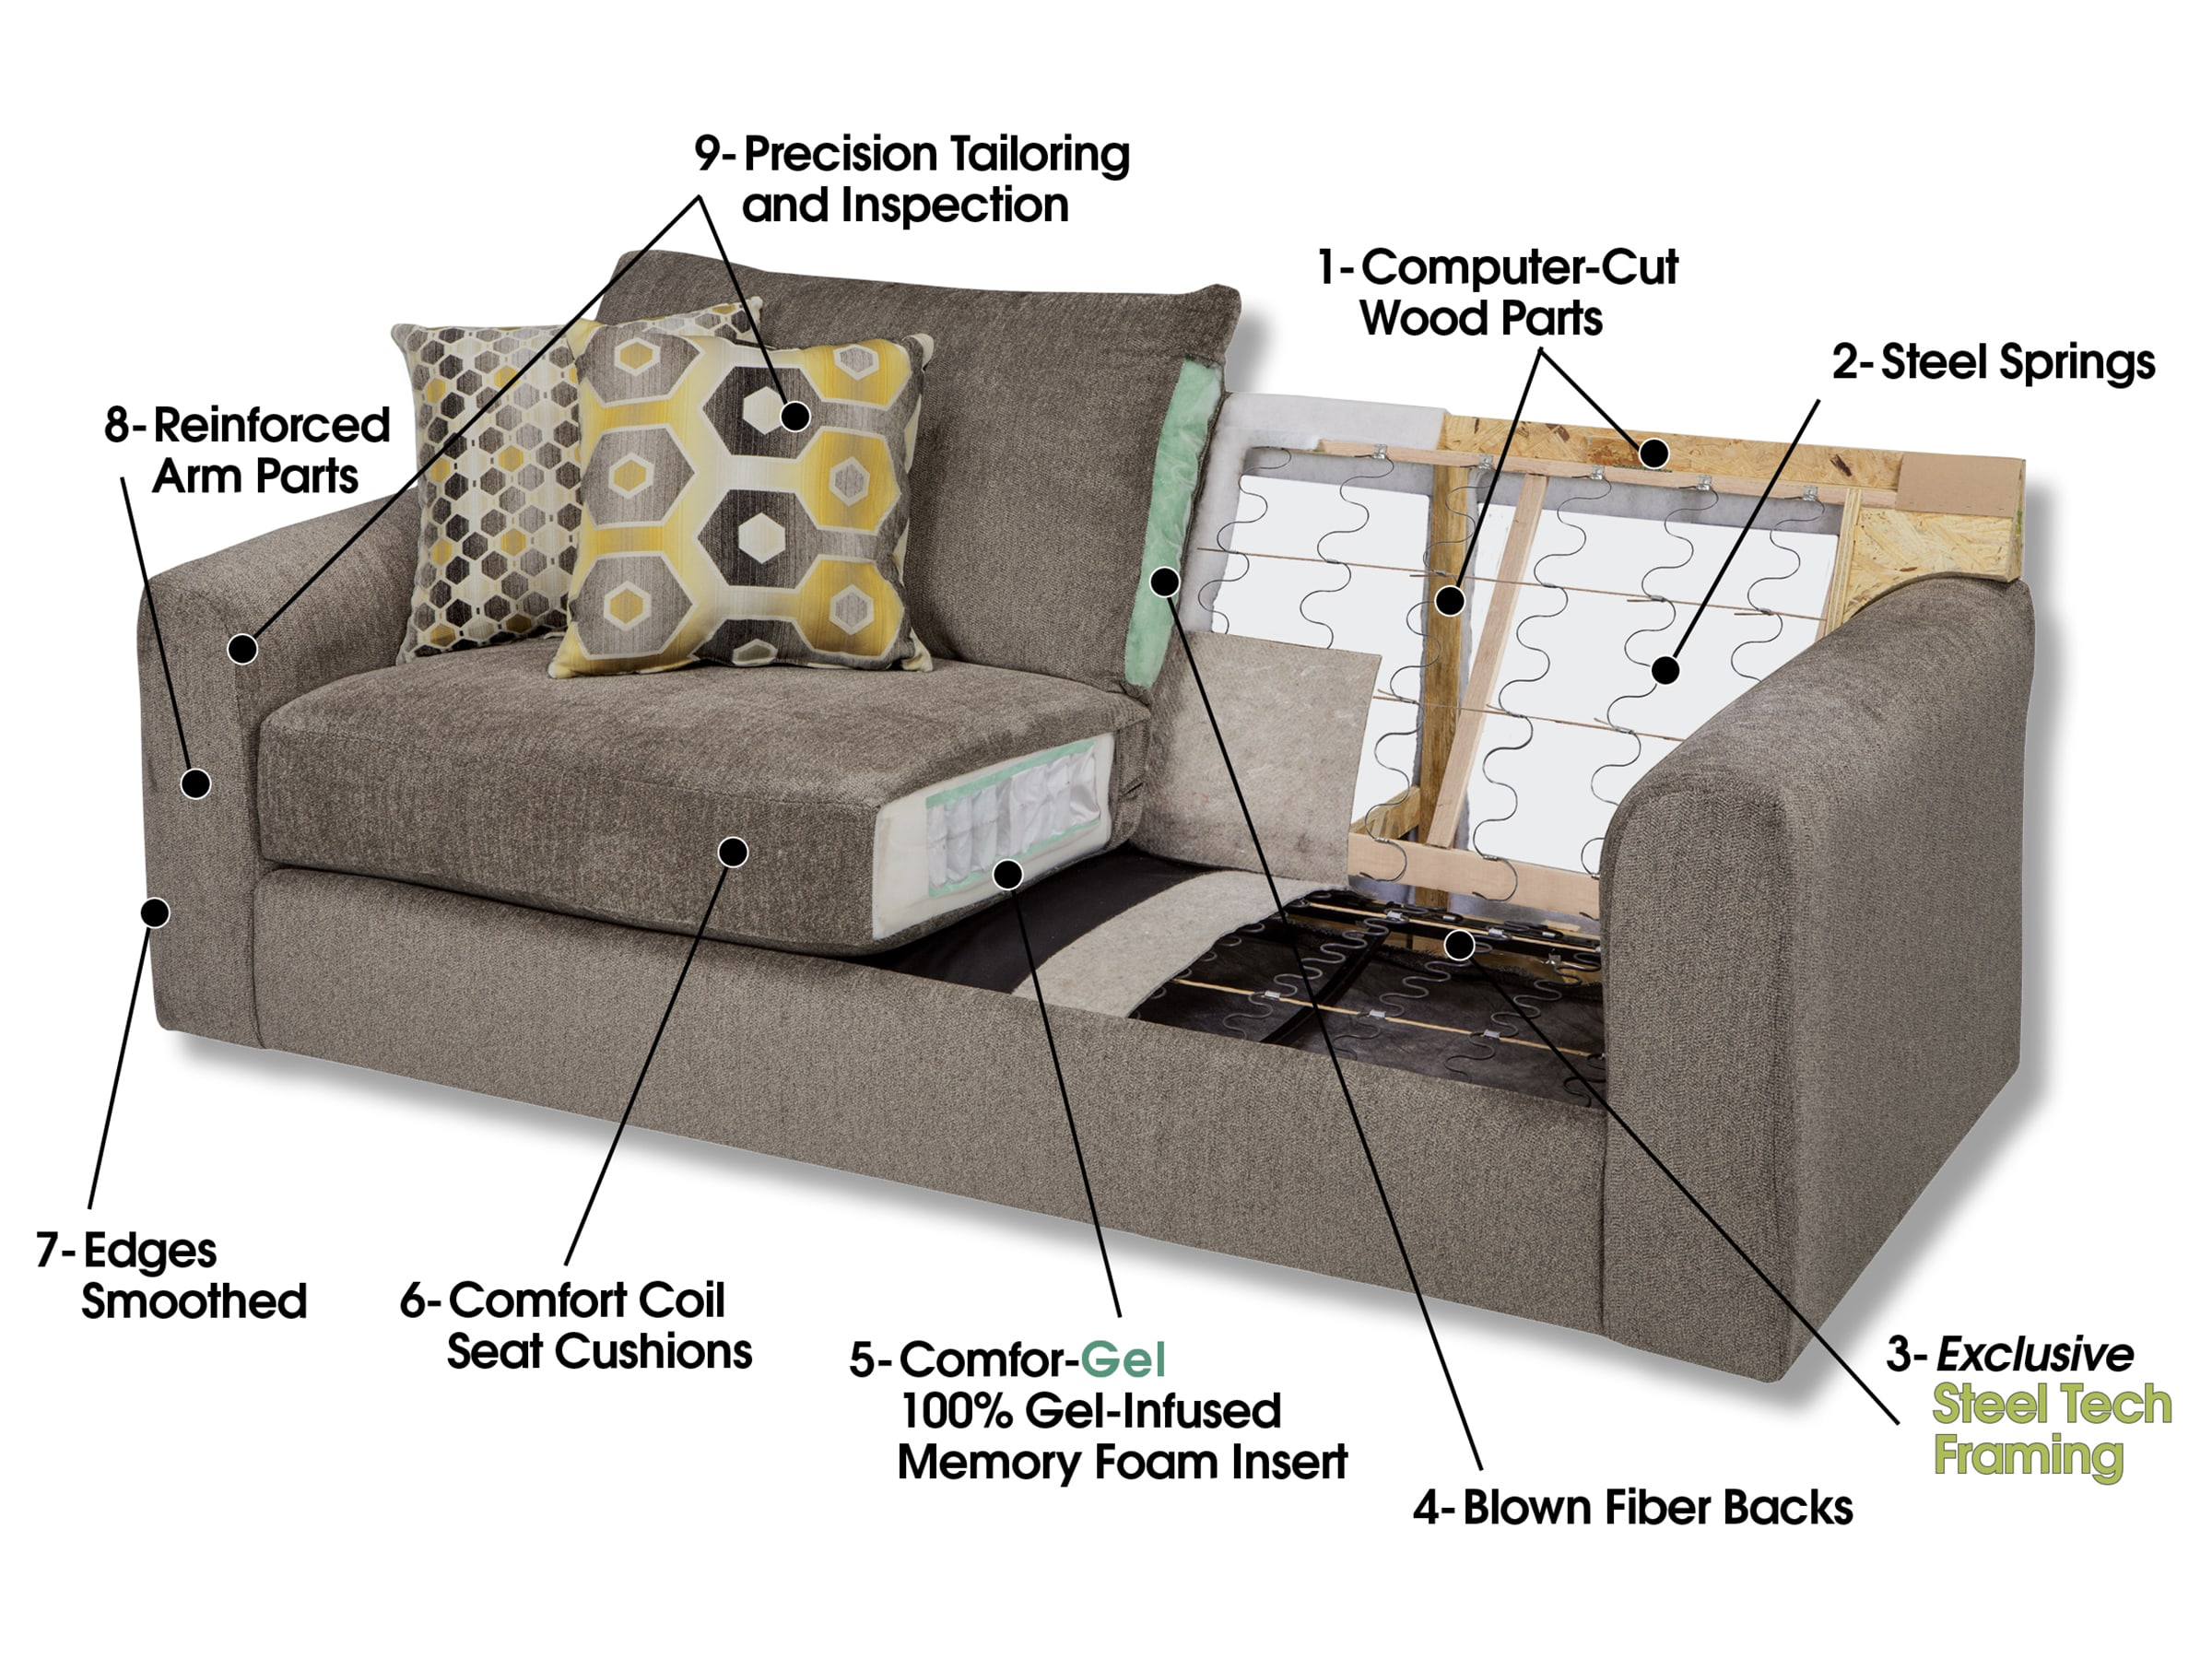 Parts of the Sofa